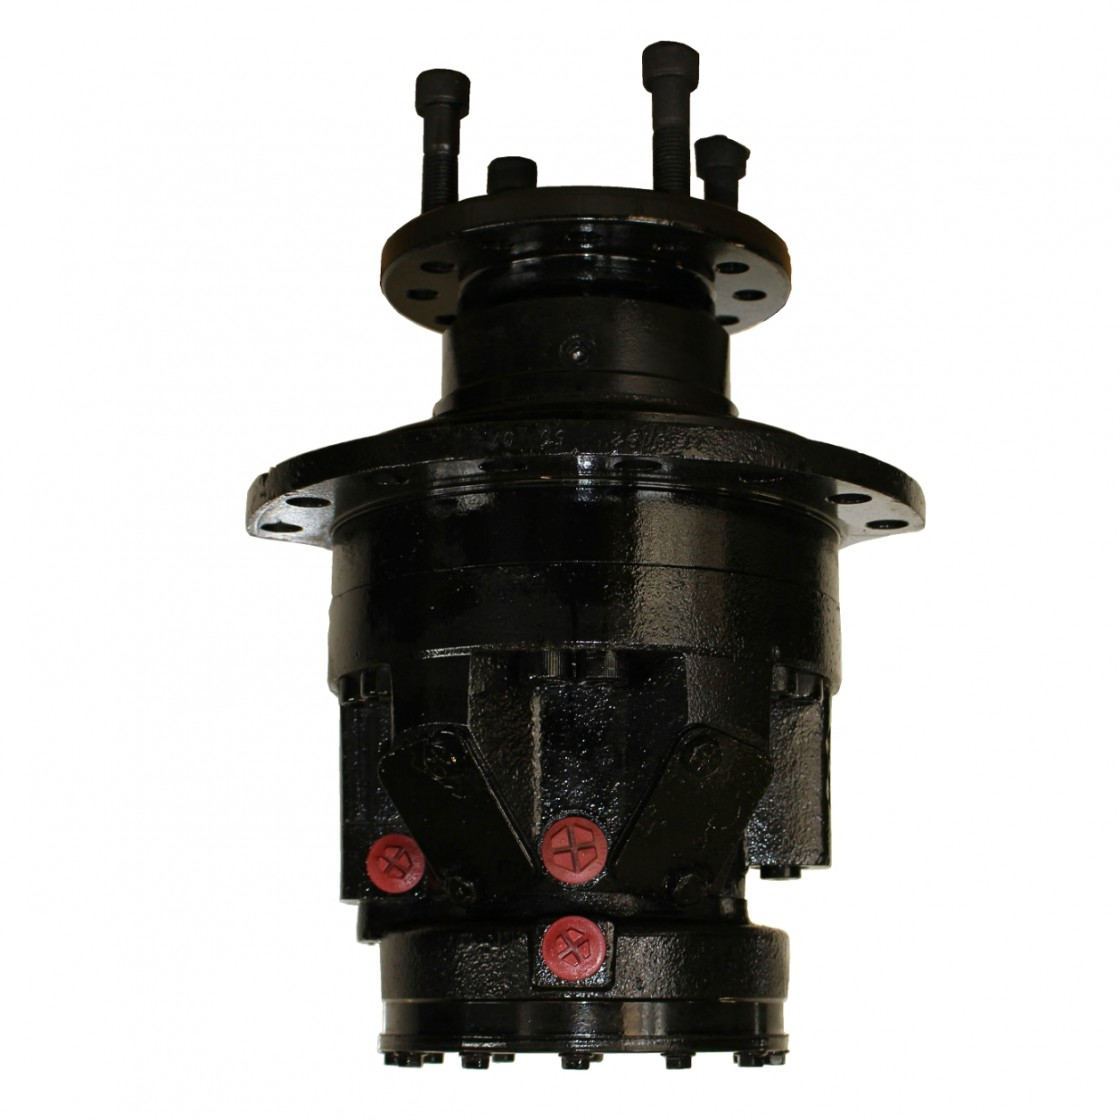 ASV RT30 Reman Hydraulic Final Drive Motor